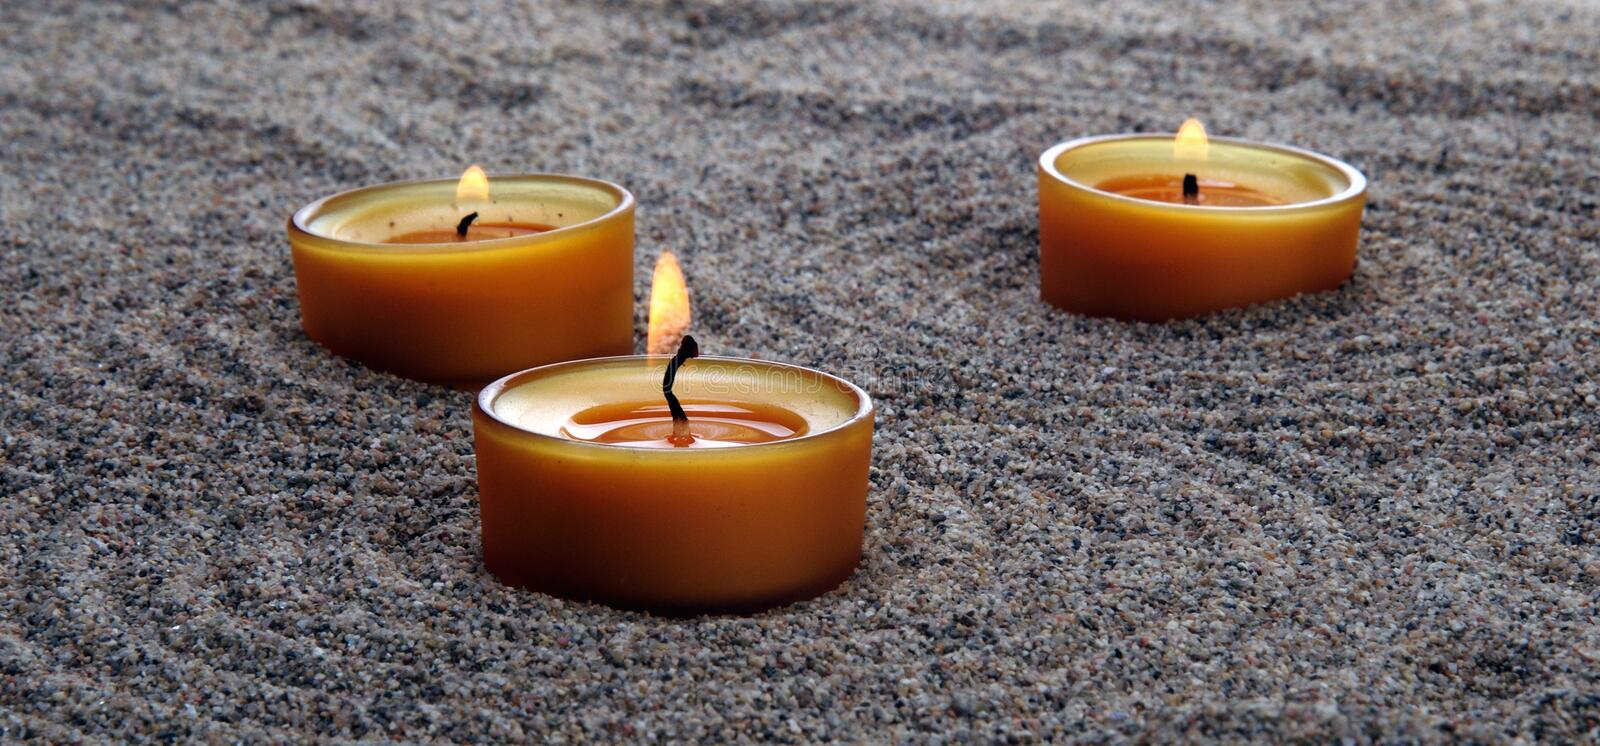 Candles in the sand. Calming patterns on the sand. stock photography